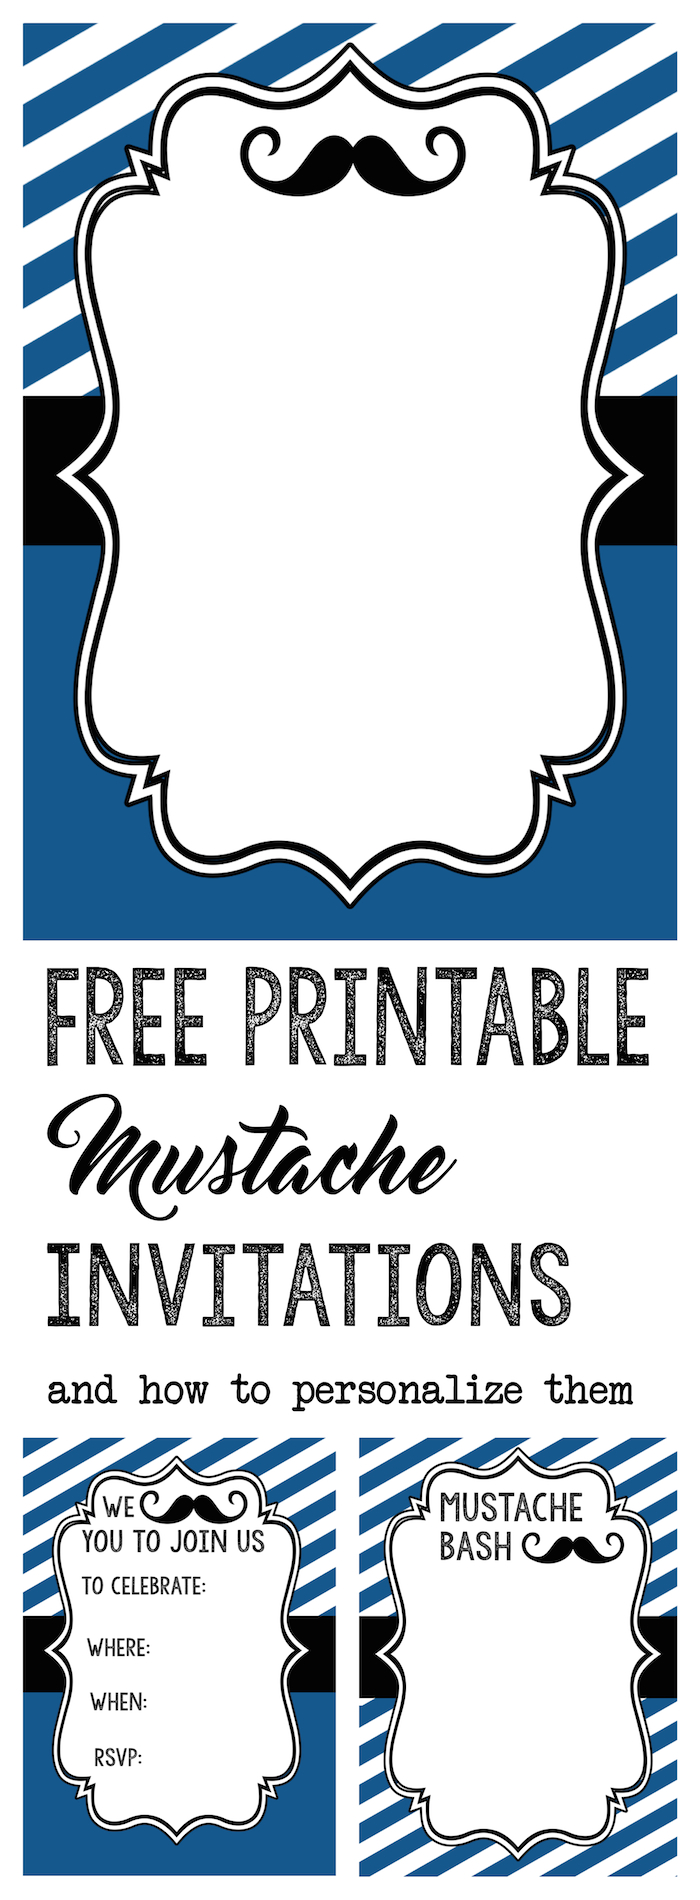 graphic regarding Free Printable Mustache Baby Shower Invitations referred to as Mustache Party Little one Shower Invites - Letter